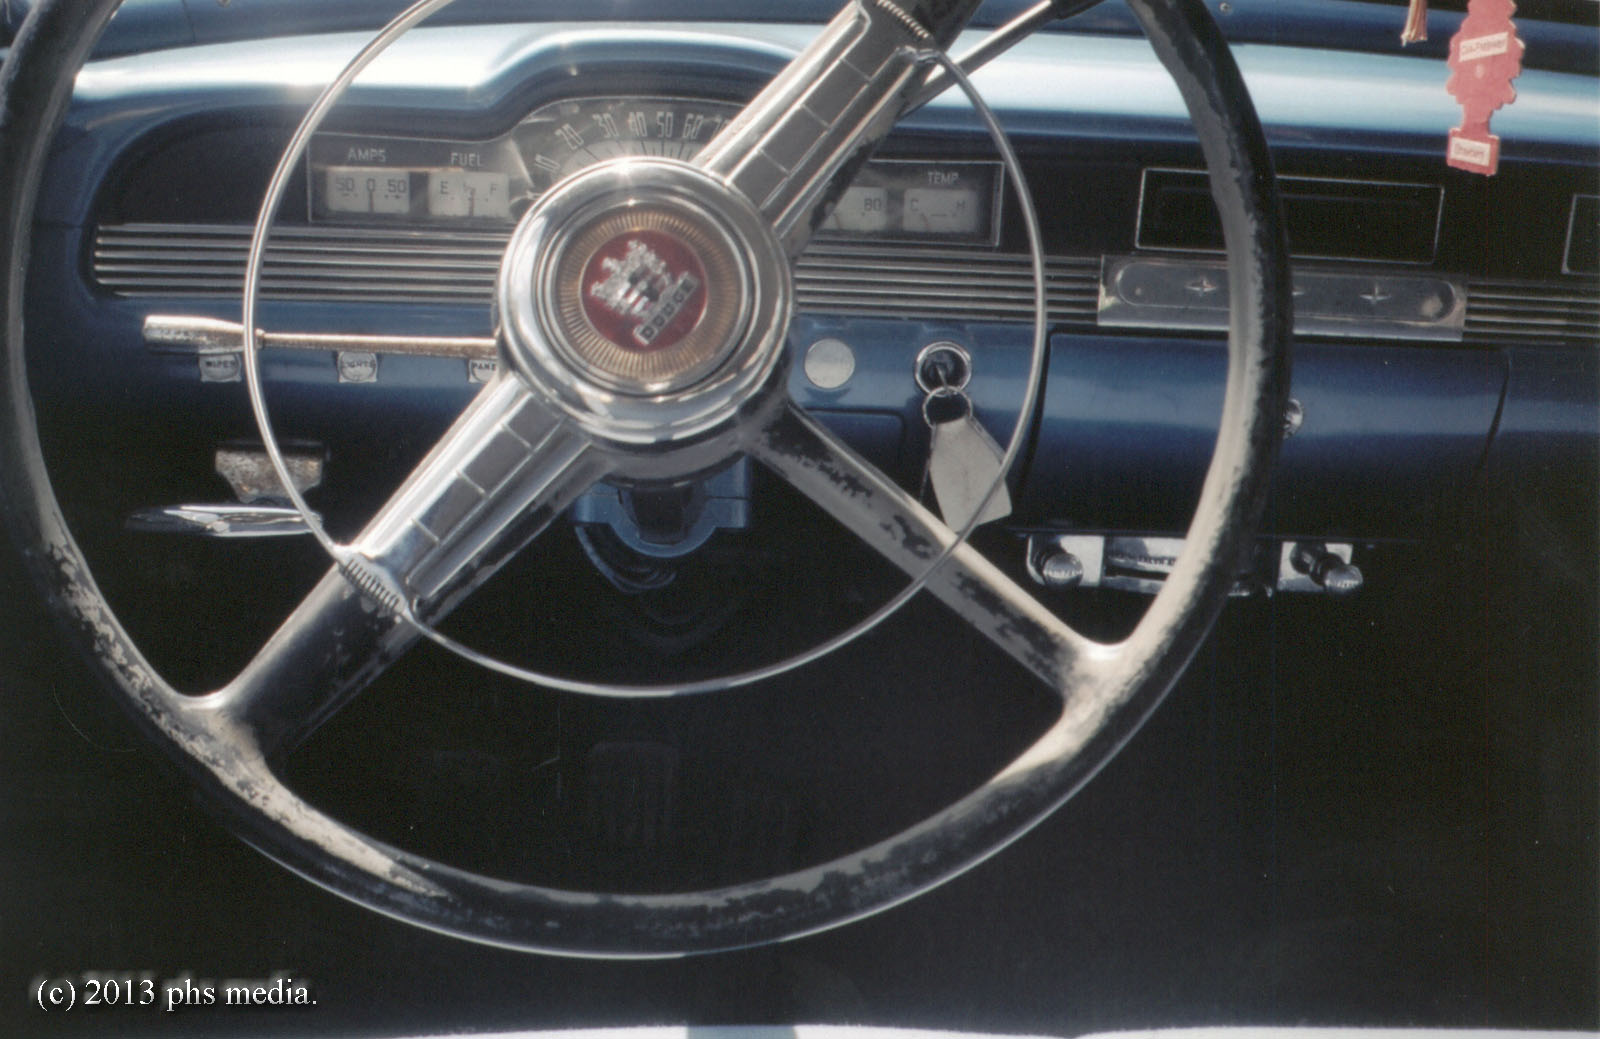 Inside it was a Cranbrook dashboard with Dodge steering wheel. Again, the  centercap is different from the American Coronet offering.